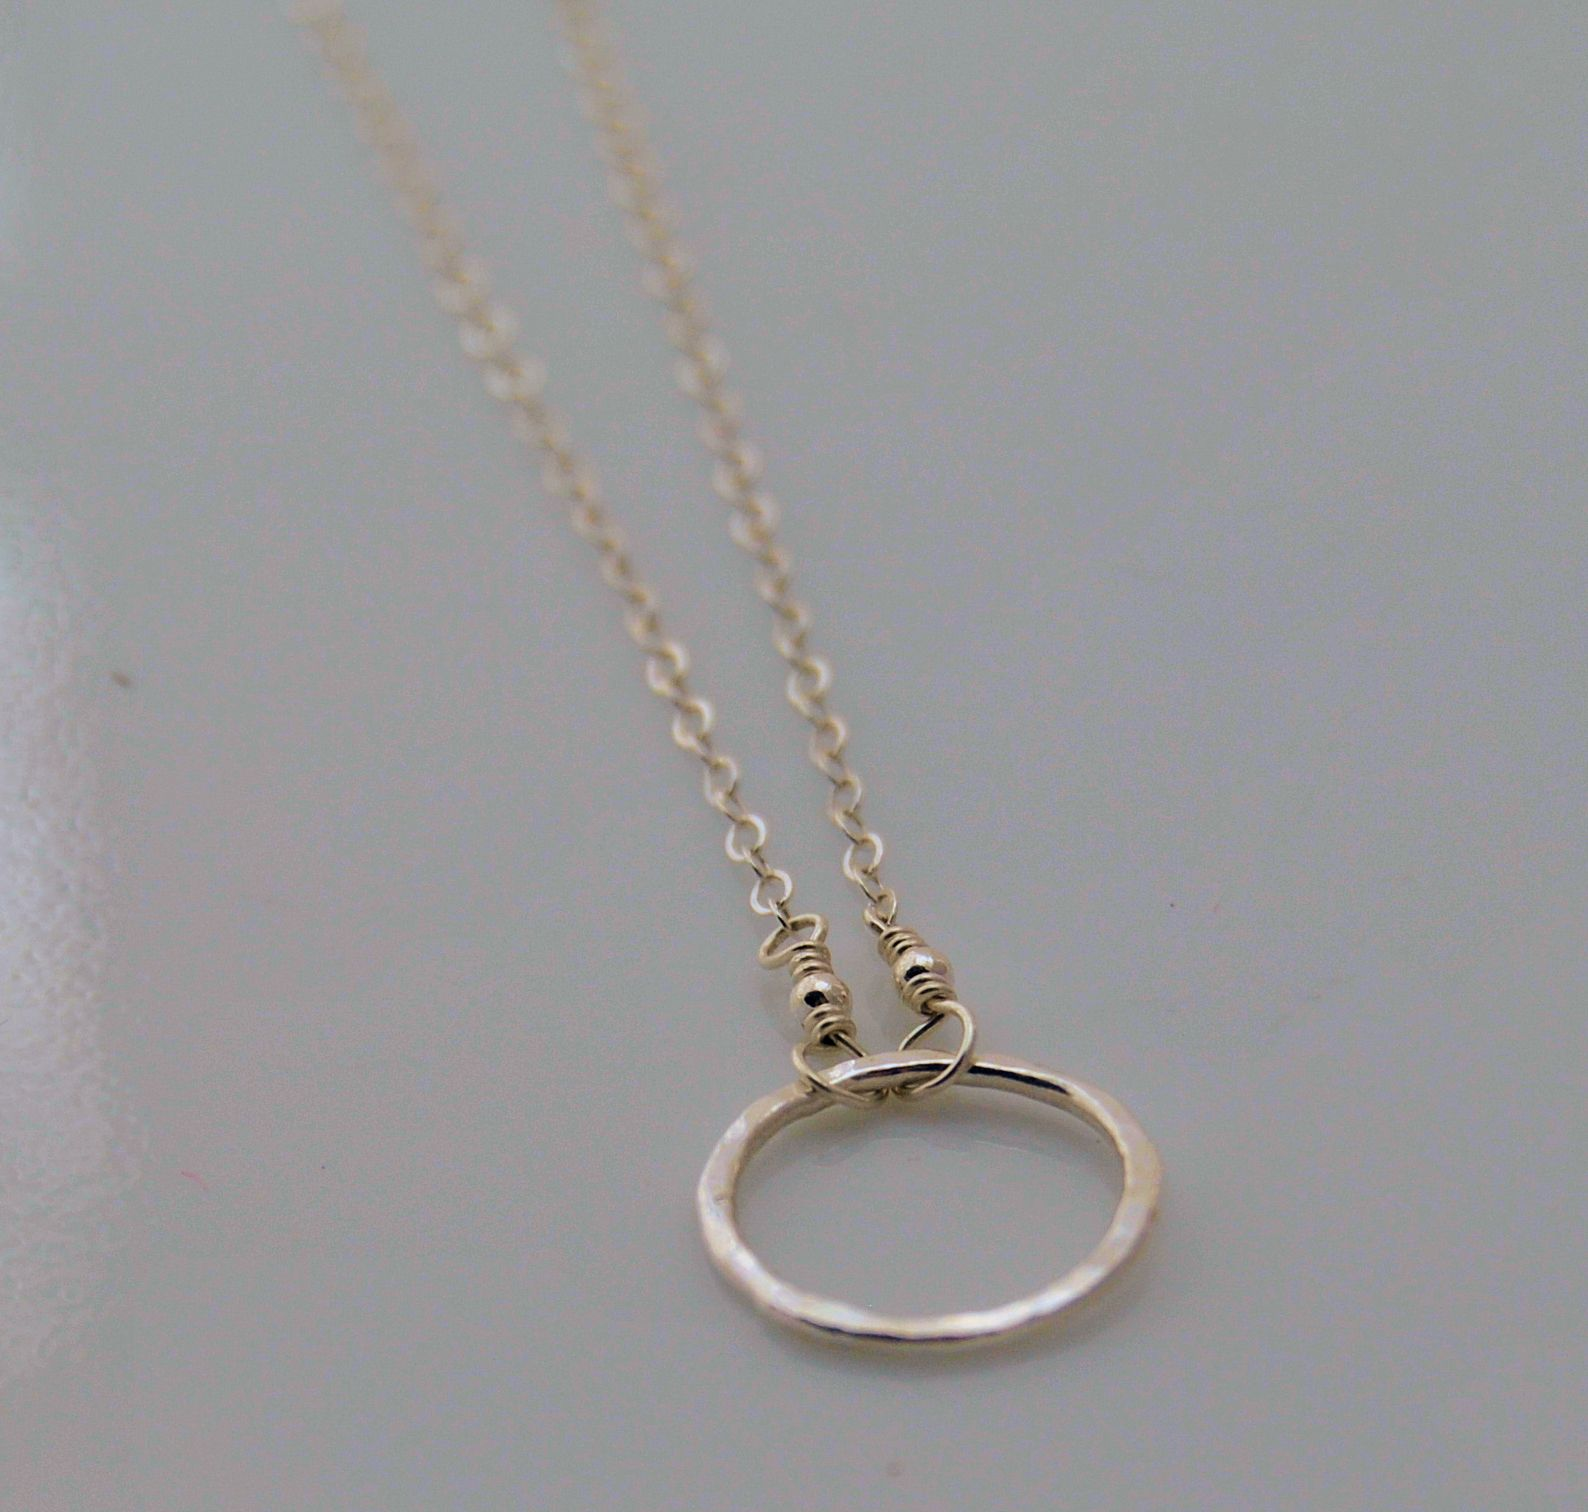 small ring necklace silverjpg 15881512 - Wedding Ring Necklace